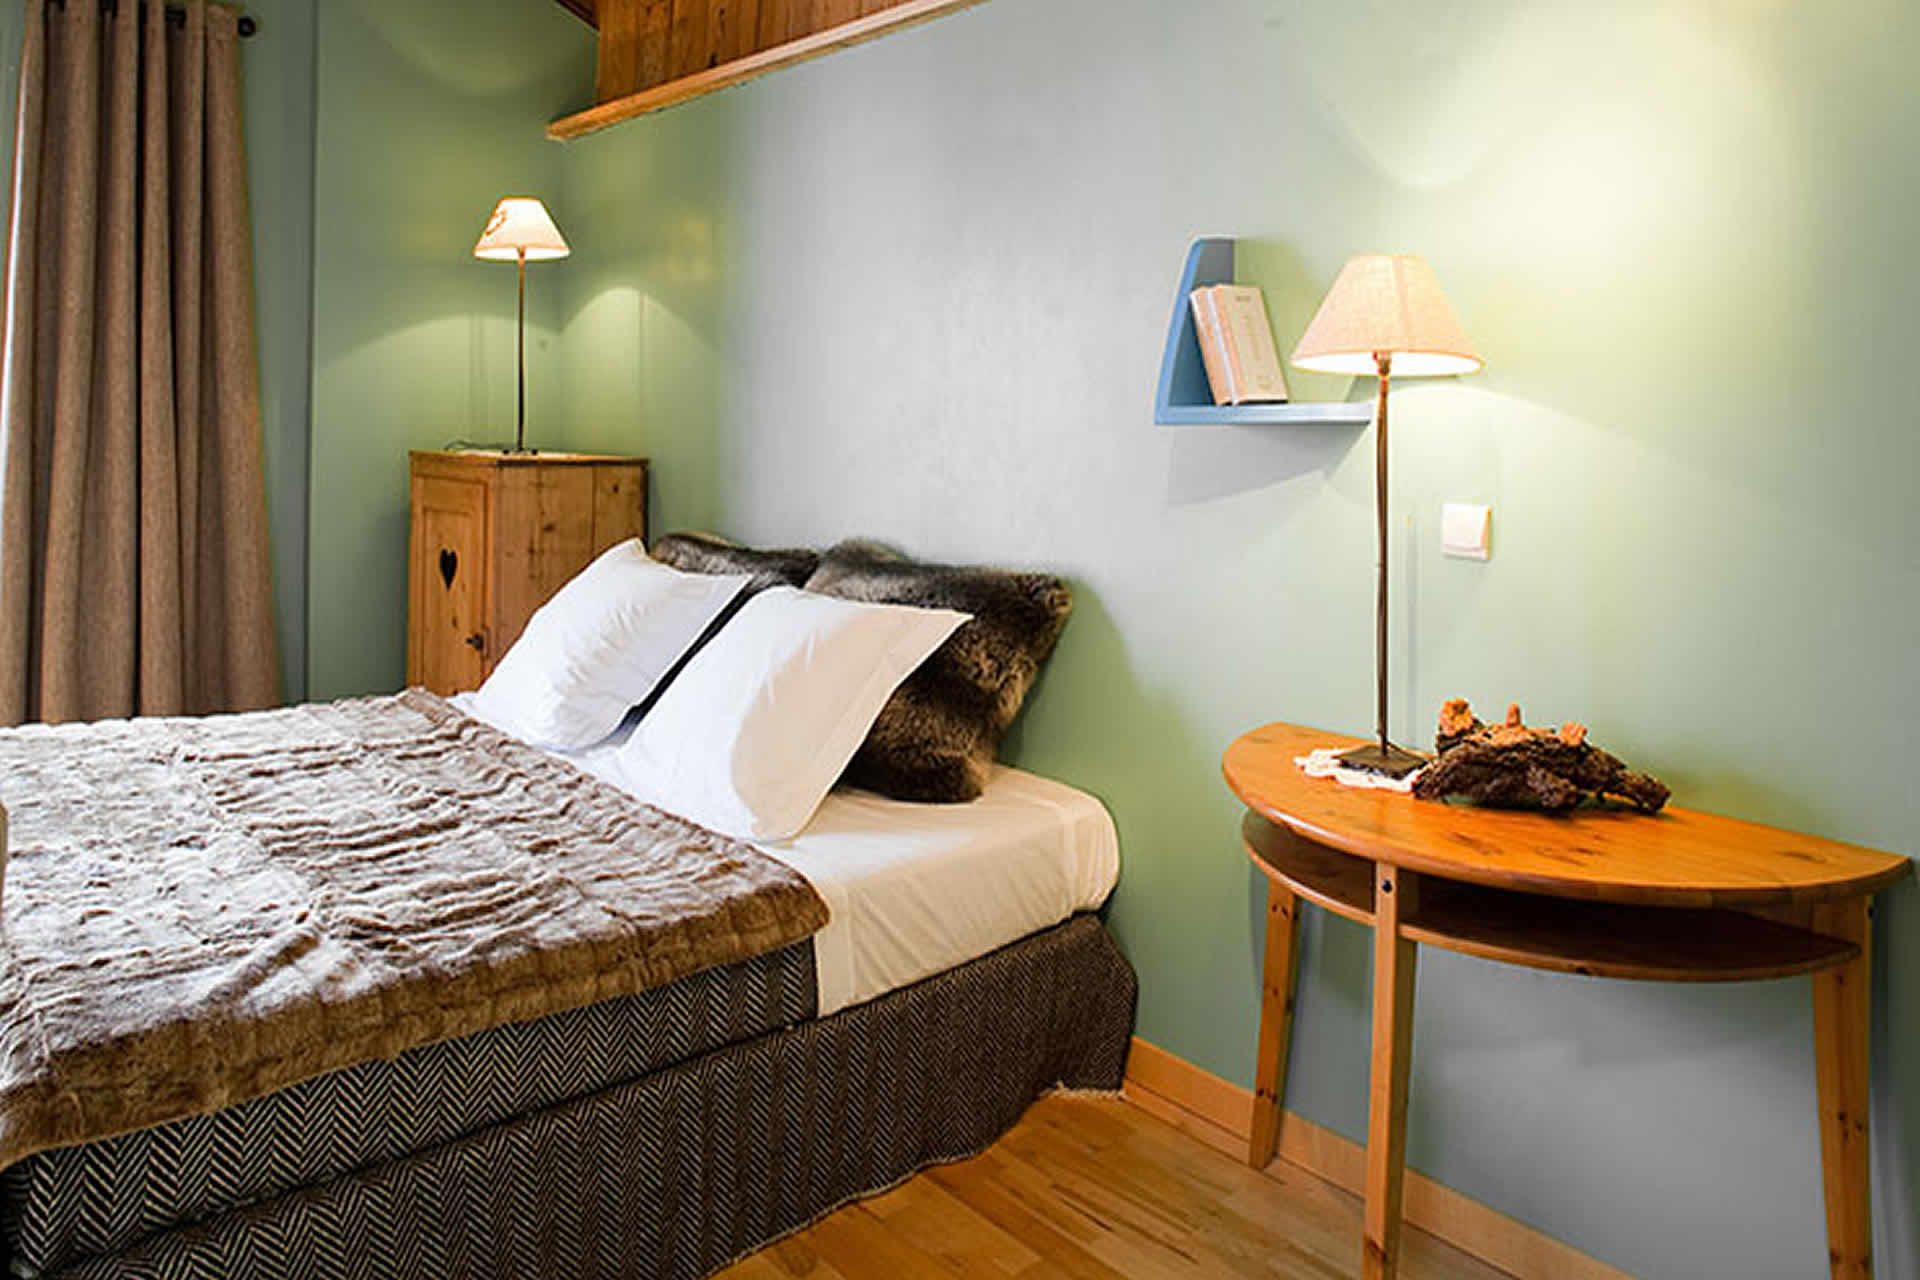 chambres_chalet7